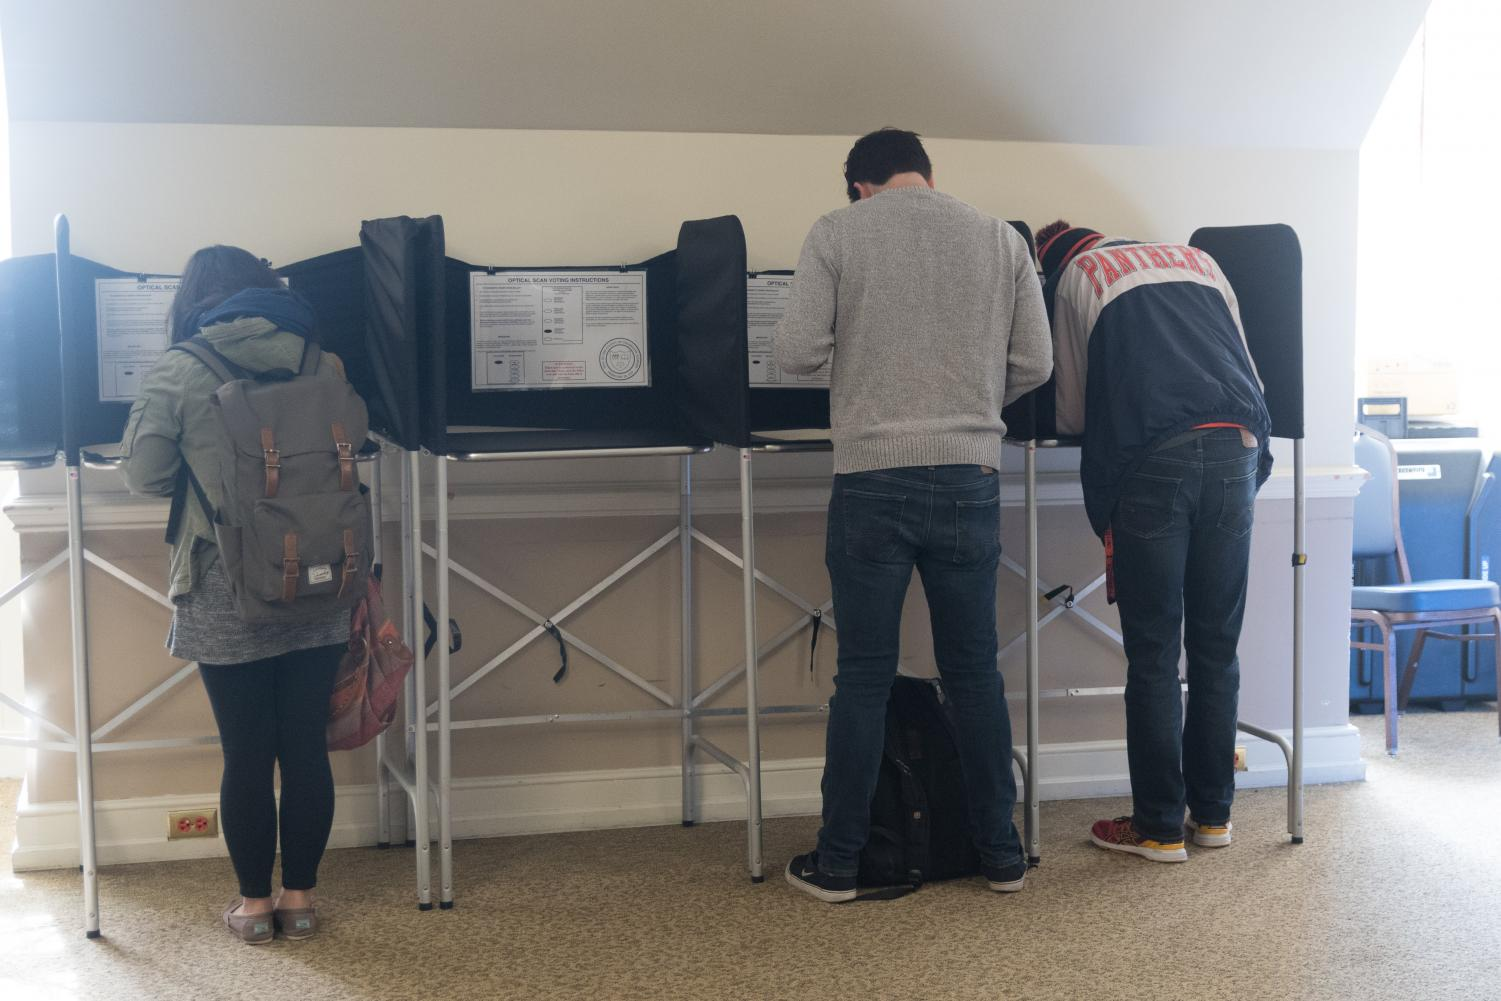 University students vote early at the Illini Union on Saturday. The University joined the Big Ten Voting Challenge, hoping for the most improved voter turnout.